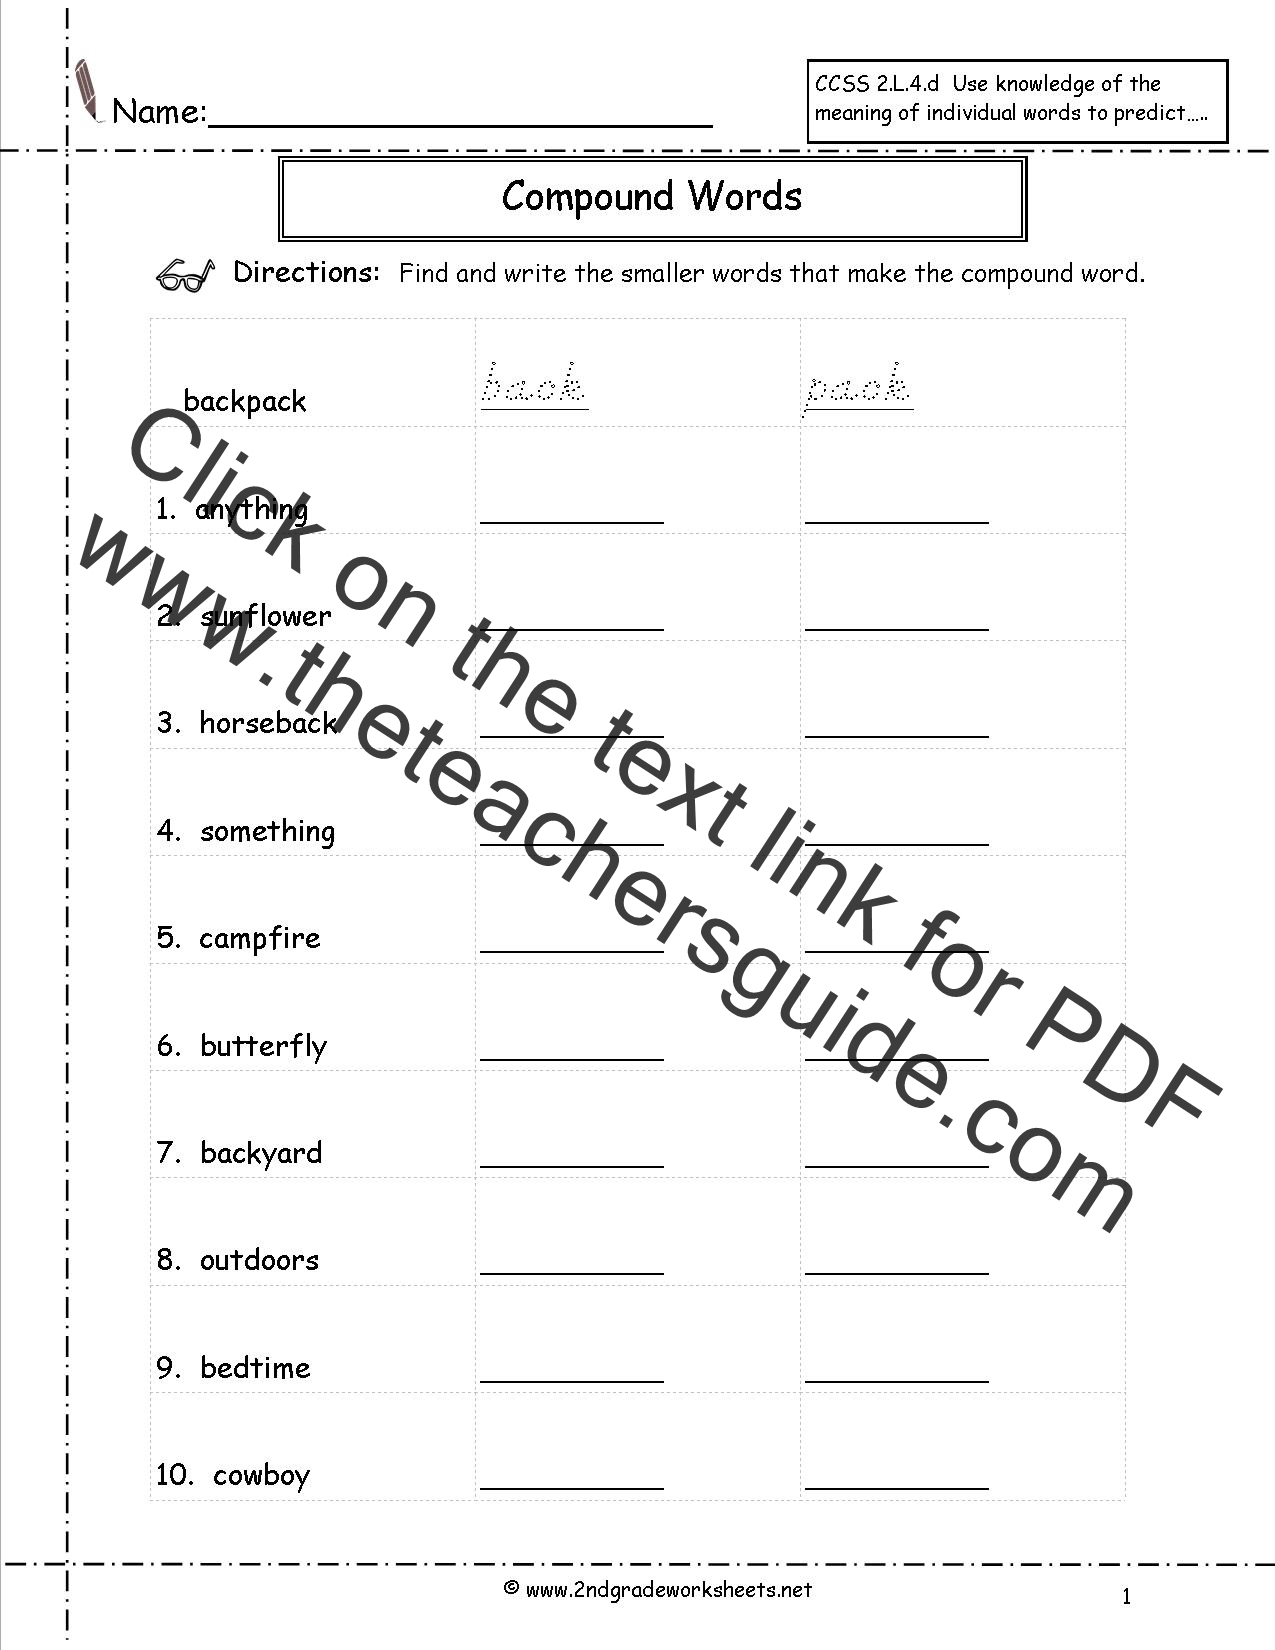 Worksheet Compound Words Worksheets 2nd Grade compound words worksheets